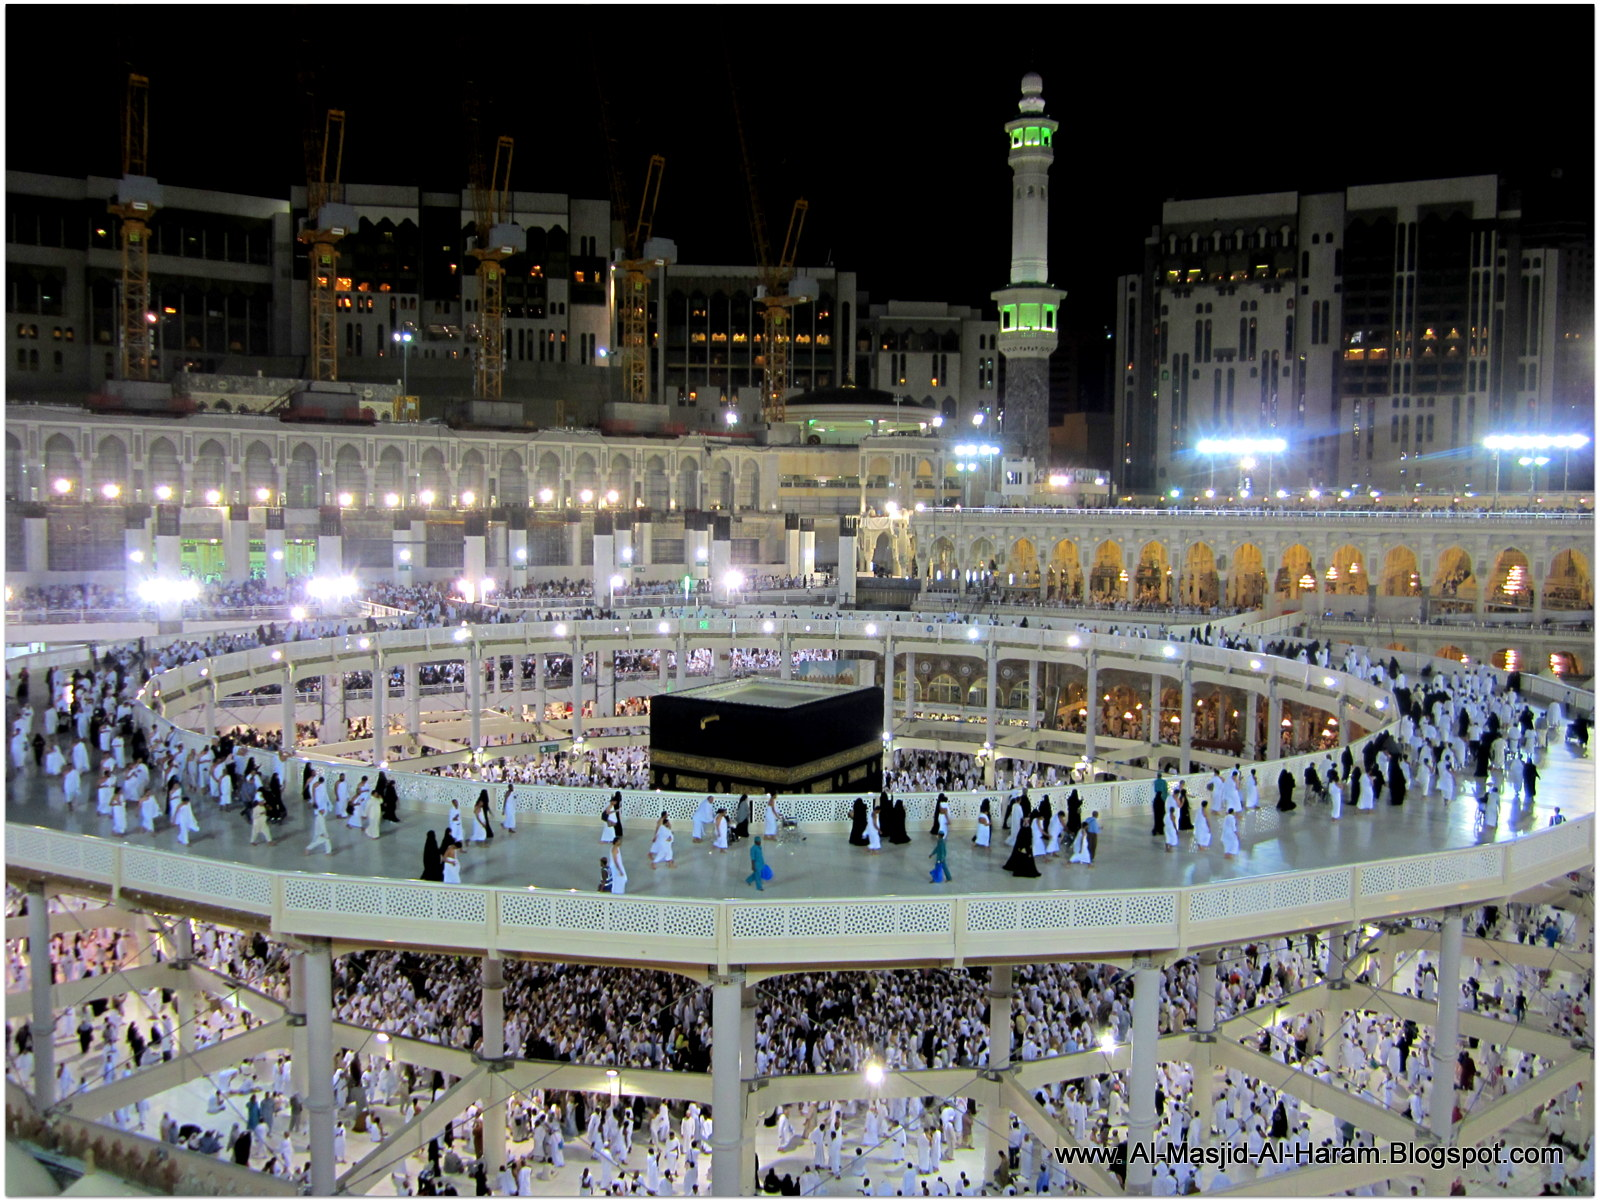 Wallpaper iphone kabah - Latest Pictures Of Kaaba Islamic Wallpapers 2013